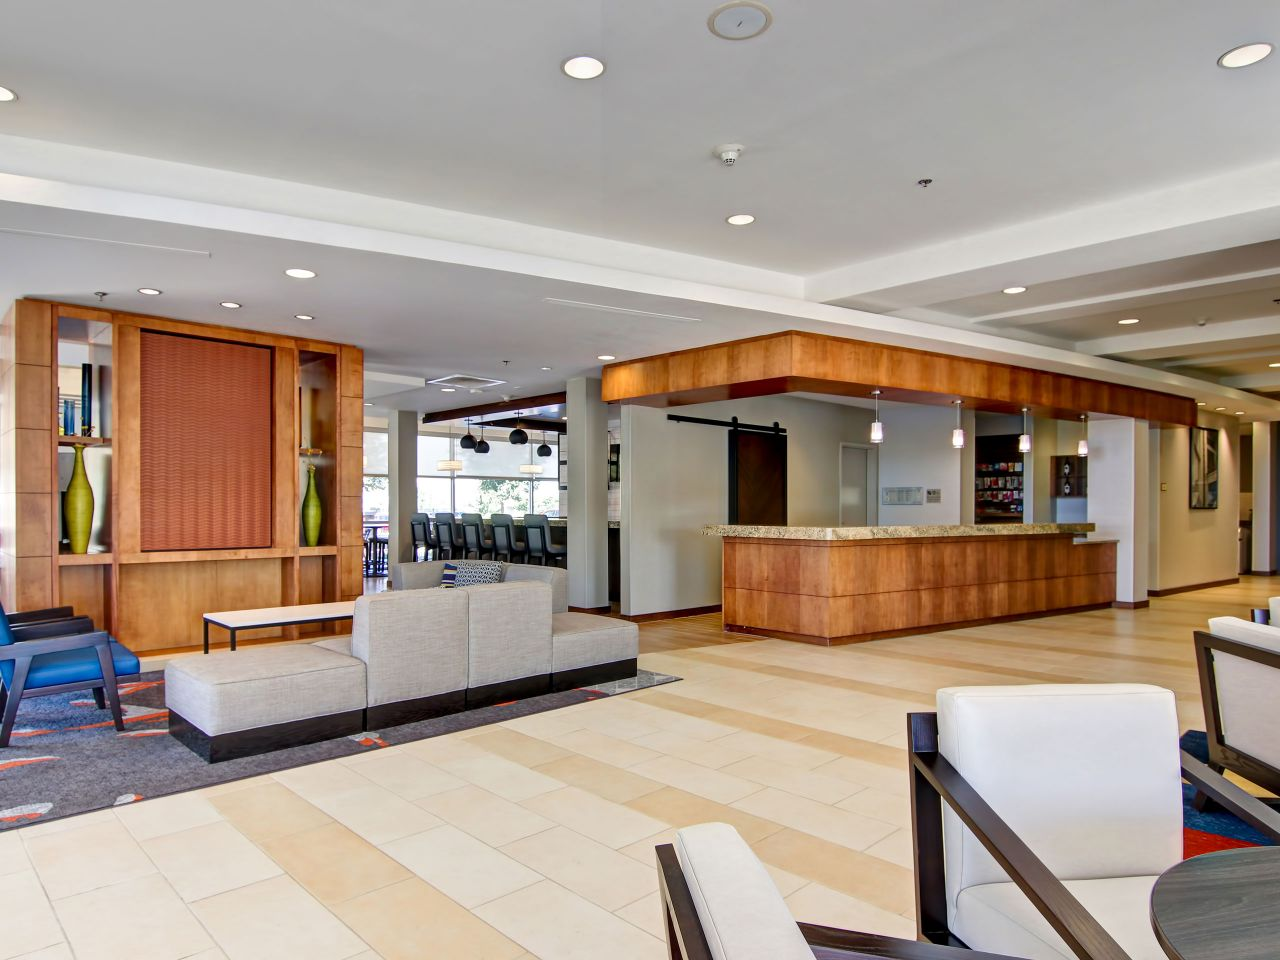 Hyatt House Lobby Area